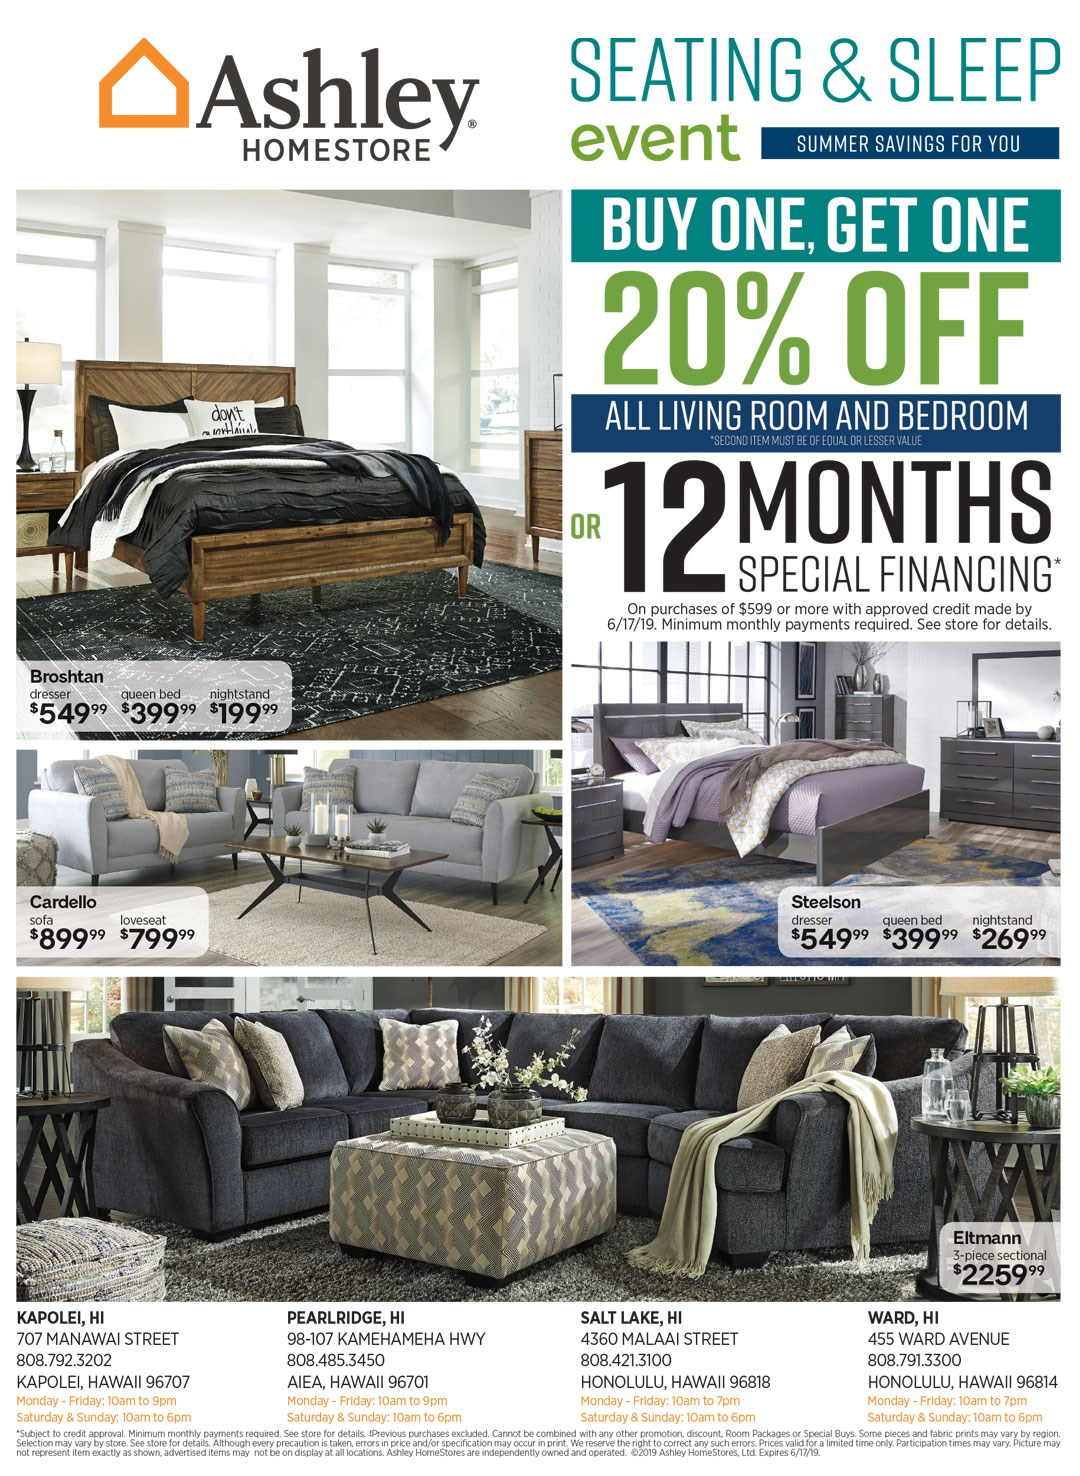 Buy one get one 20% off all living room and bedroom or 12 months financing. See store for details.